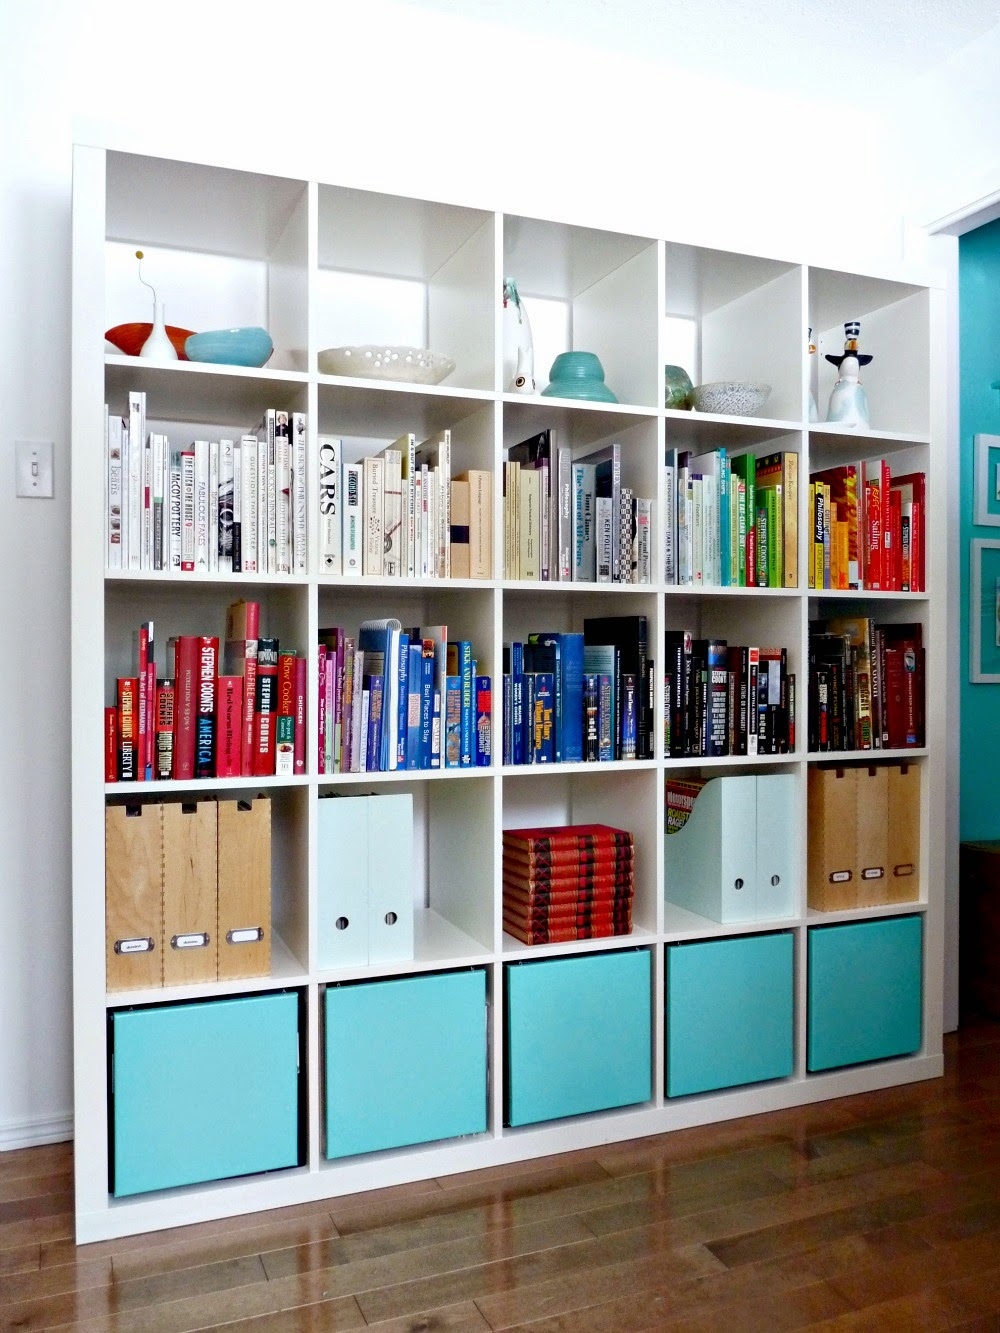 Aufbewahrungsbox Ikea Expedit Craft Room Storage Projects Diy Projects Craft Ideas How To S